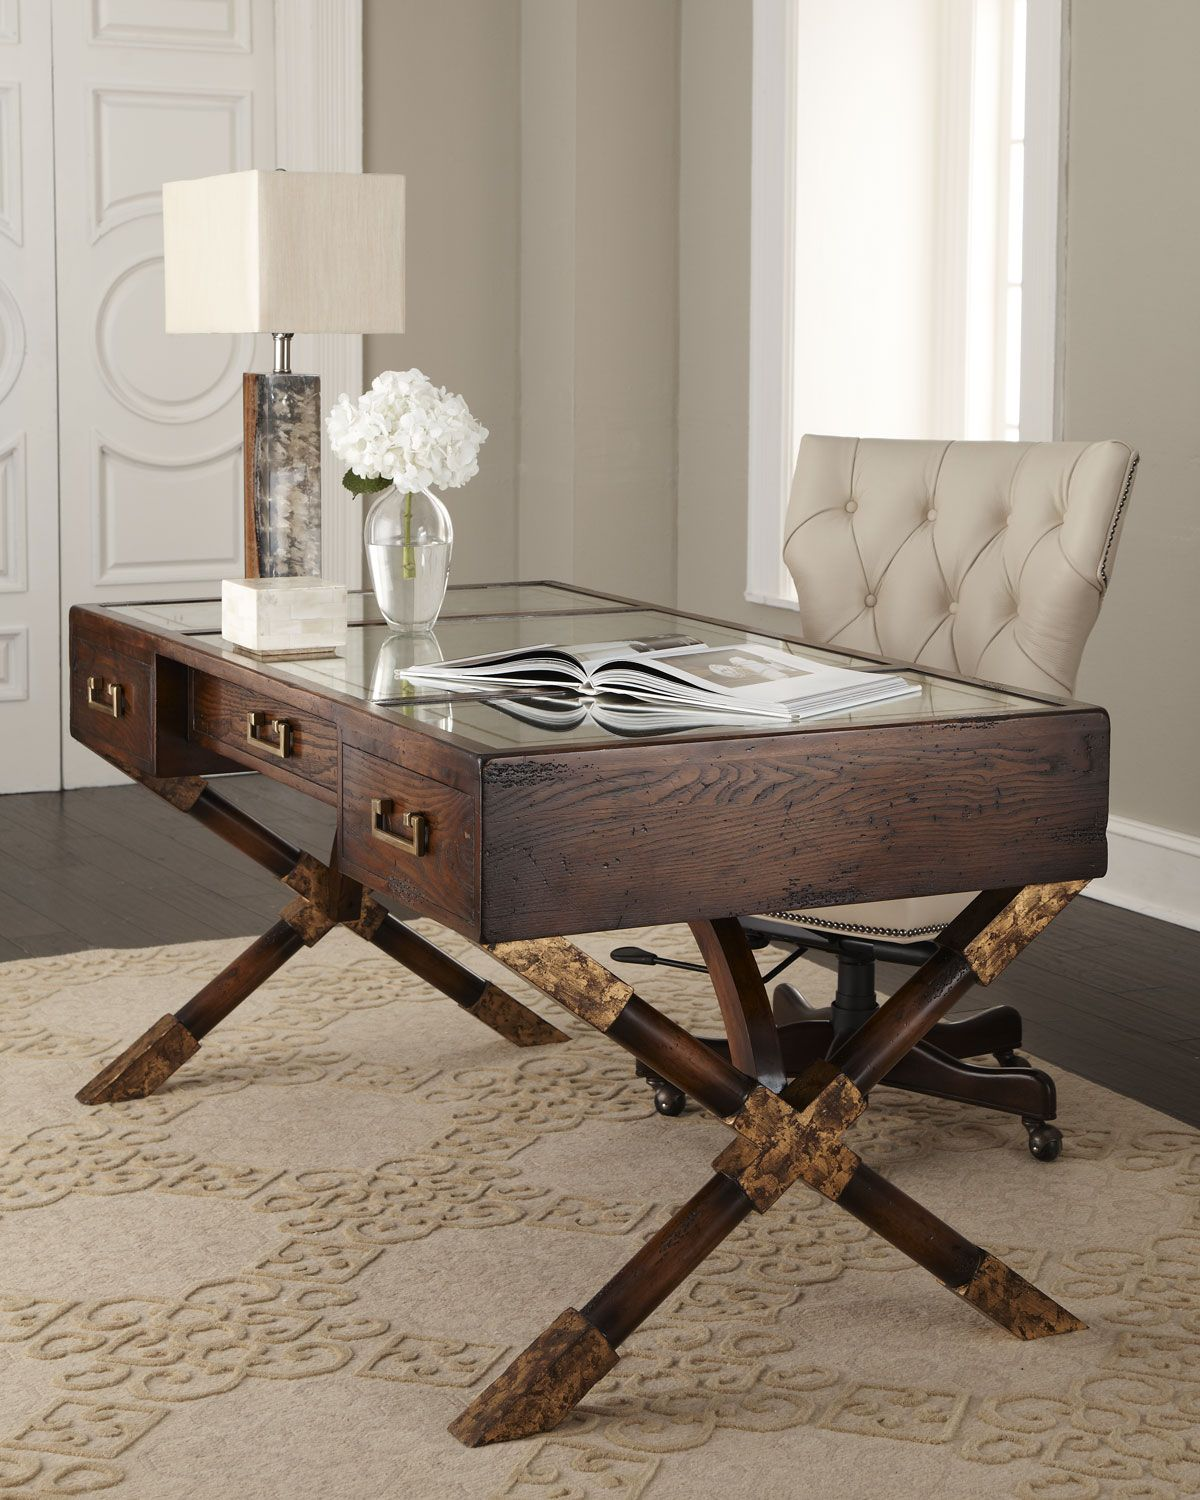 Sleek acacia wood paige desk from the john richard collection available at neiman marcus the 3 drawer desk is topped with antiqued eglomise glass with